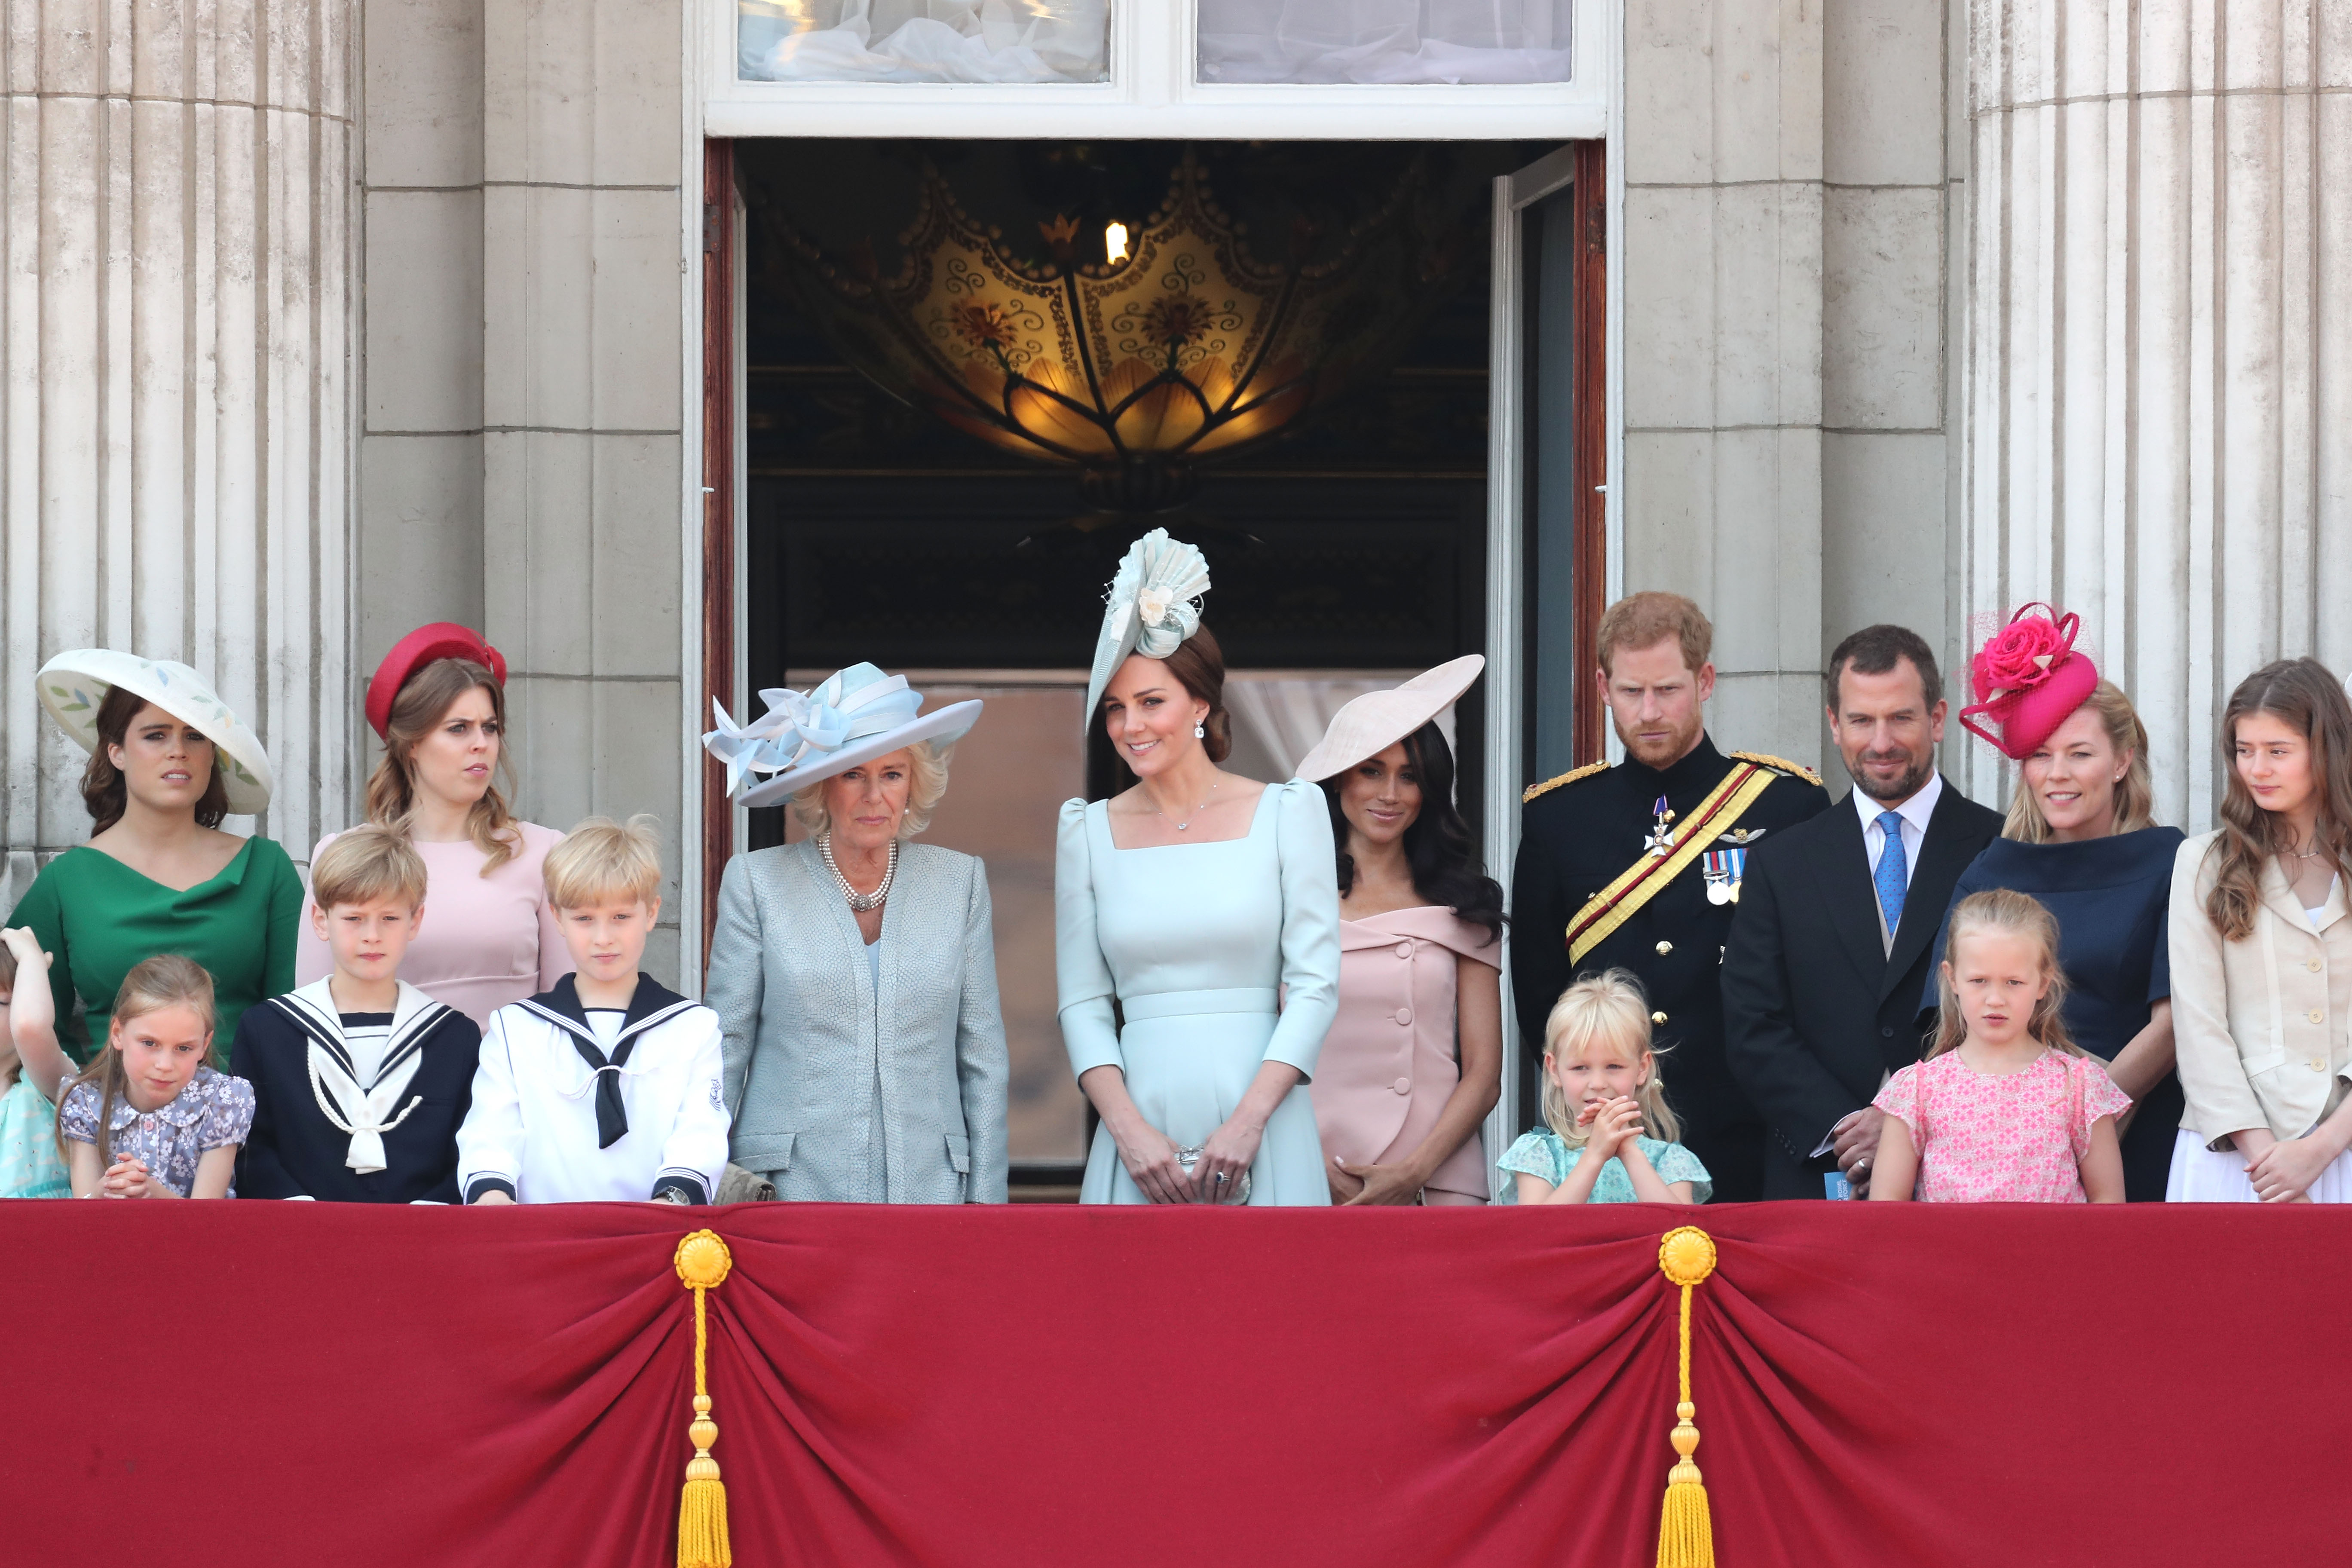 (From left to right) Princess Eugenie, Princess Beatrice, Camilla, Duchess Of Cornwall, Kate Middleton, Duchess of Cambridge, Meghan Markle, Duchess of Sussex, Prince Harry, Duke of Sussex. (Front row, left to right) Peter Phillips, Autumn Phillips, Isla Phillips and Savannah Phillips on the balcony of Buckingham Palace during Trooping The Colour on June 9, 2018 in London, England